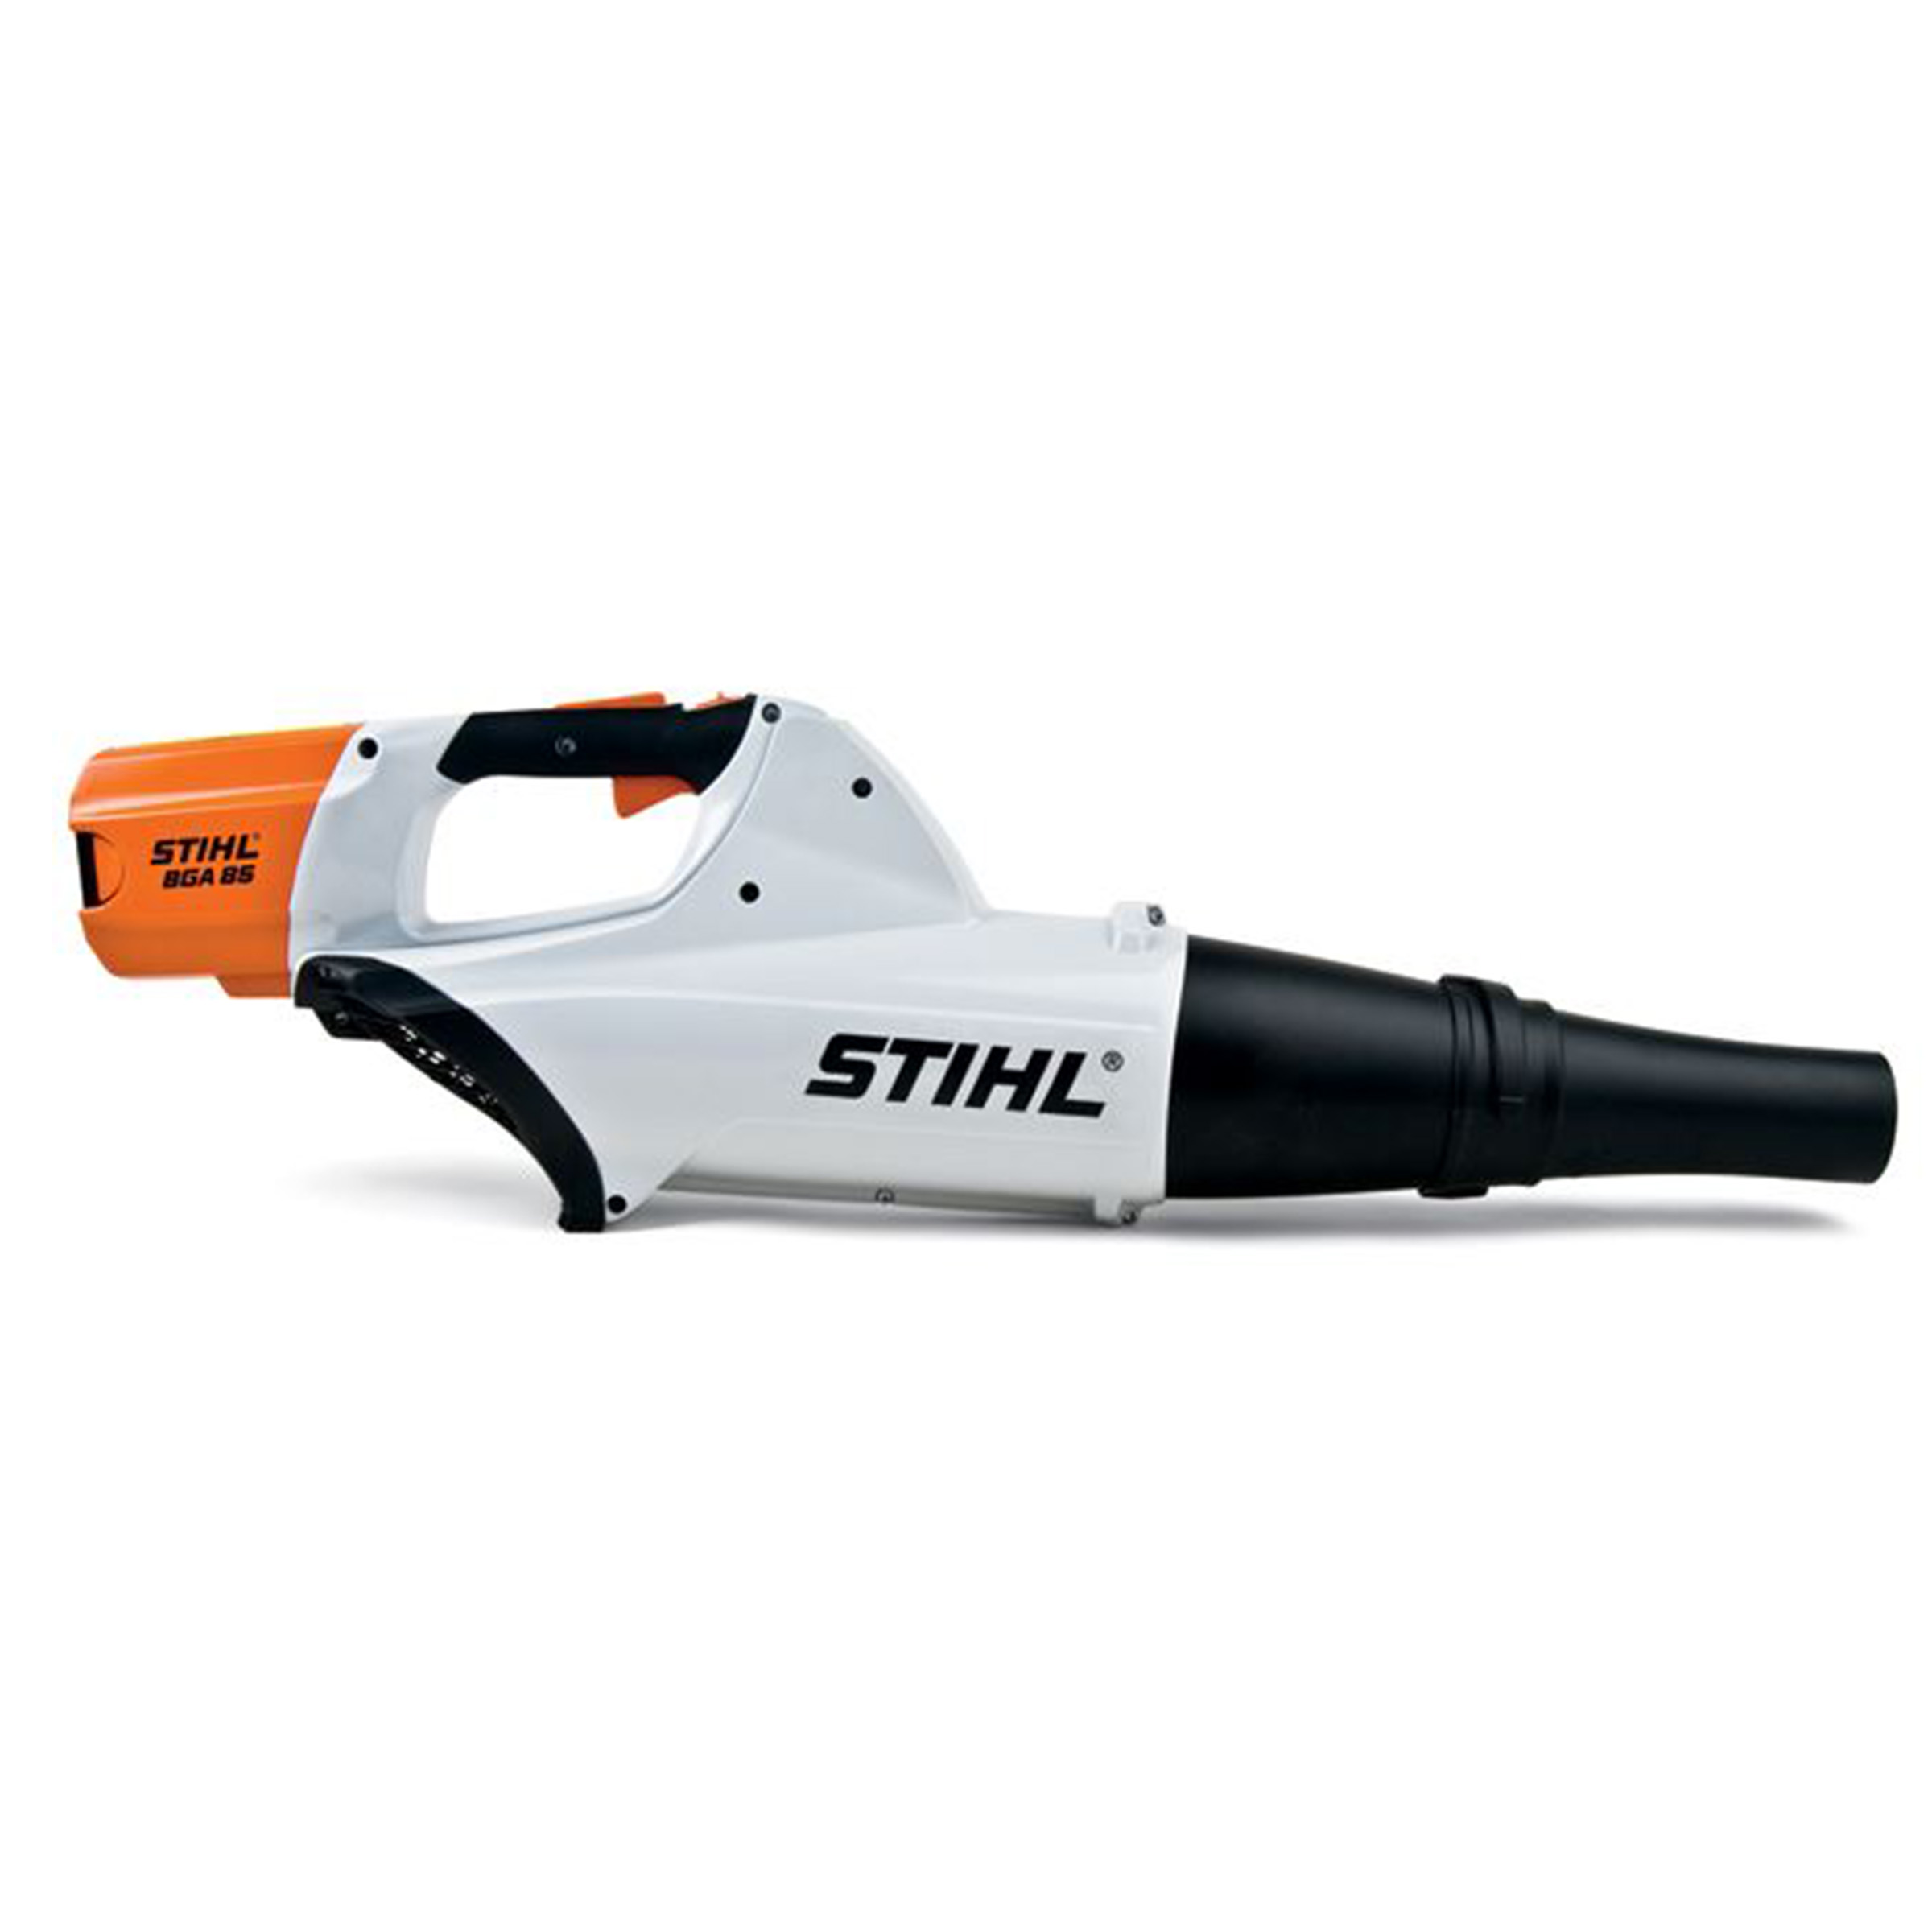 Stihl Leaf Blower Stihl Gas Powered Leaf Blower Pictures to pin on  #B64F15